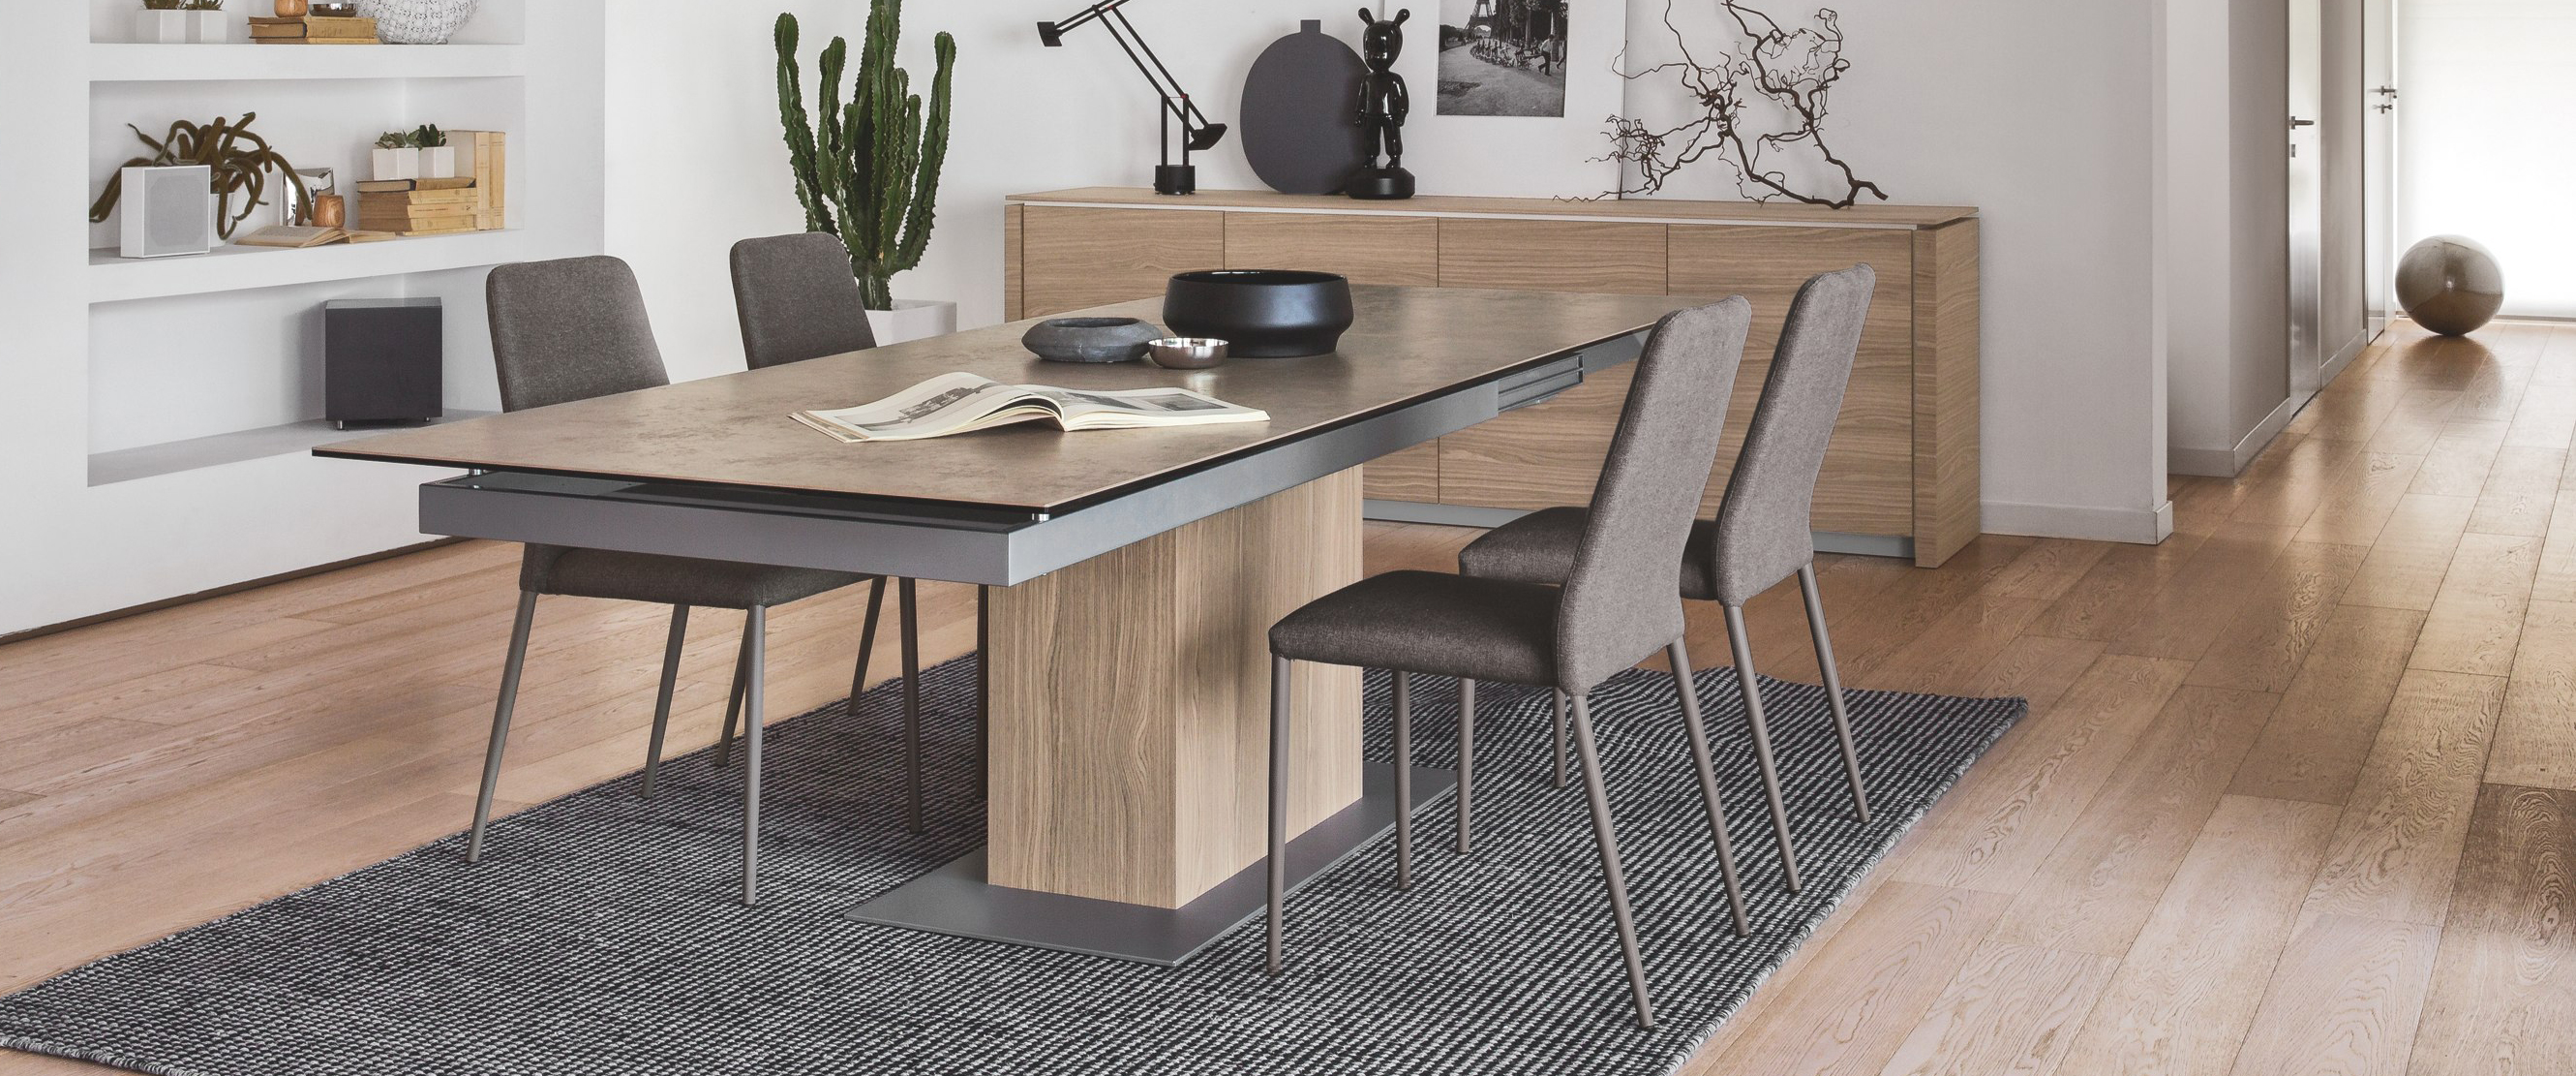 Calligaris sincro extra long modern extendable dining for Long contemporary dining tables